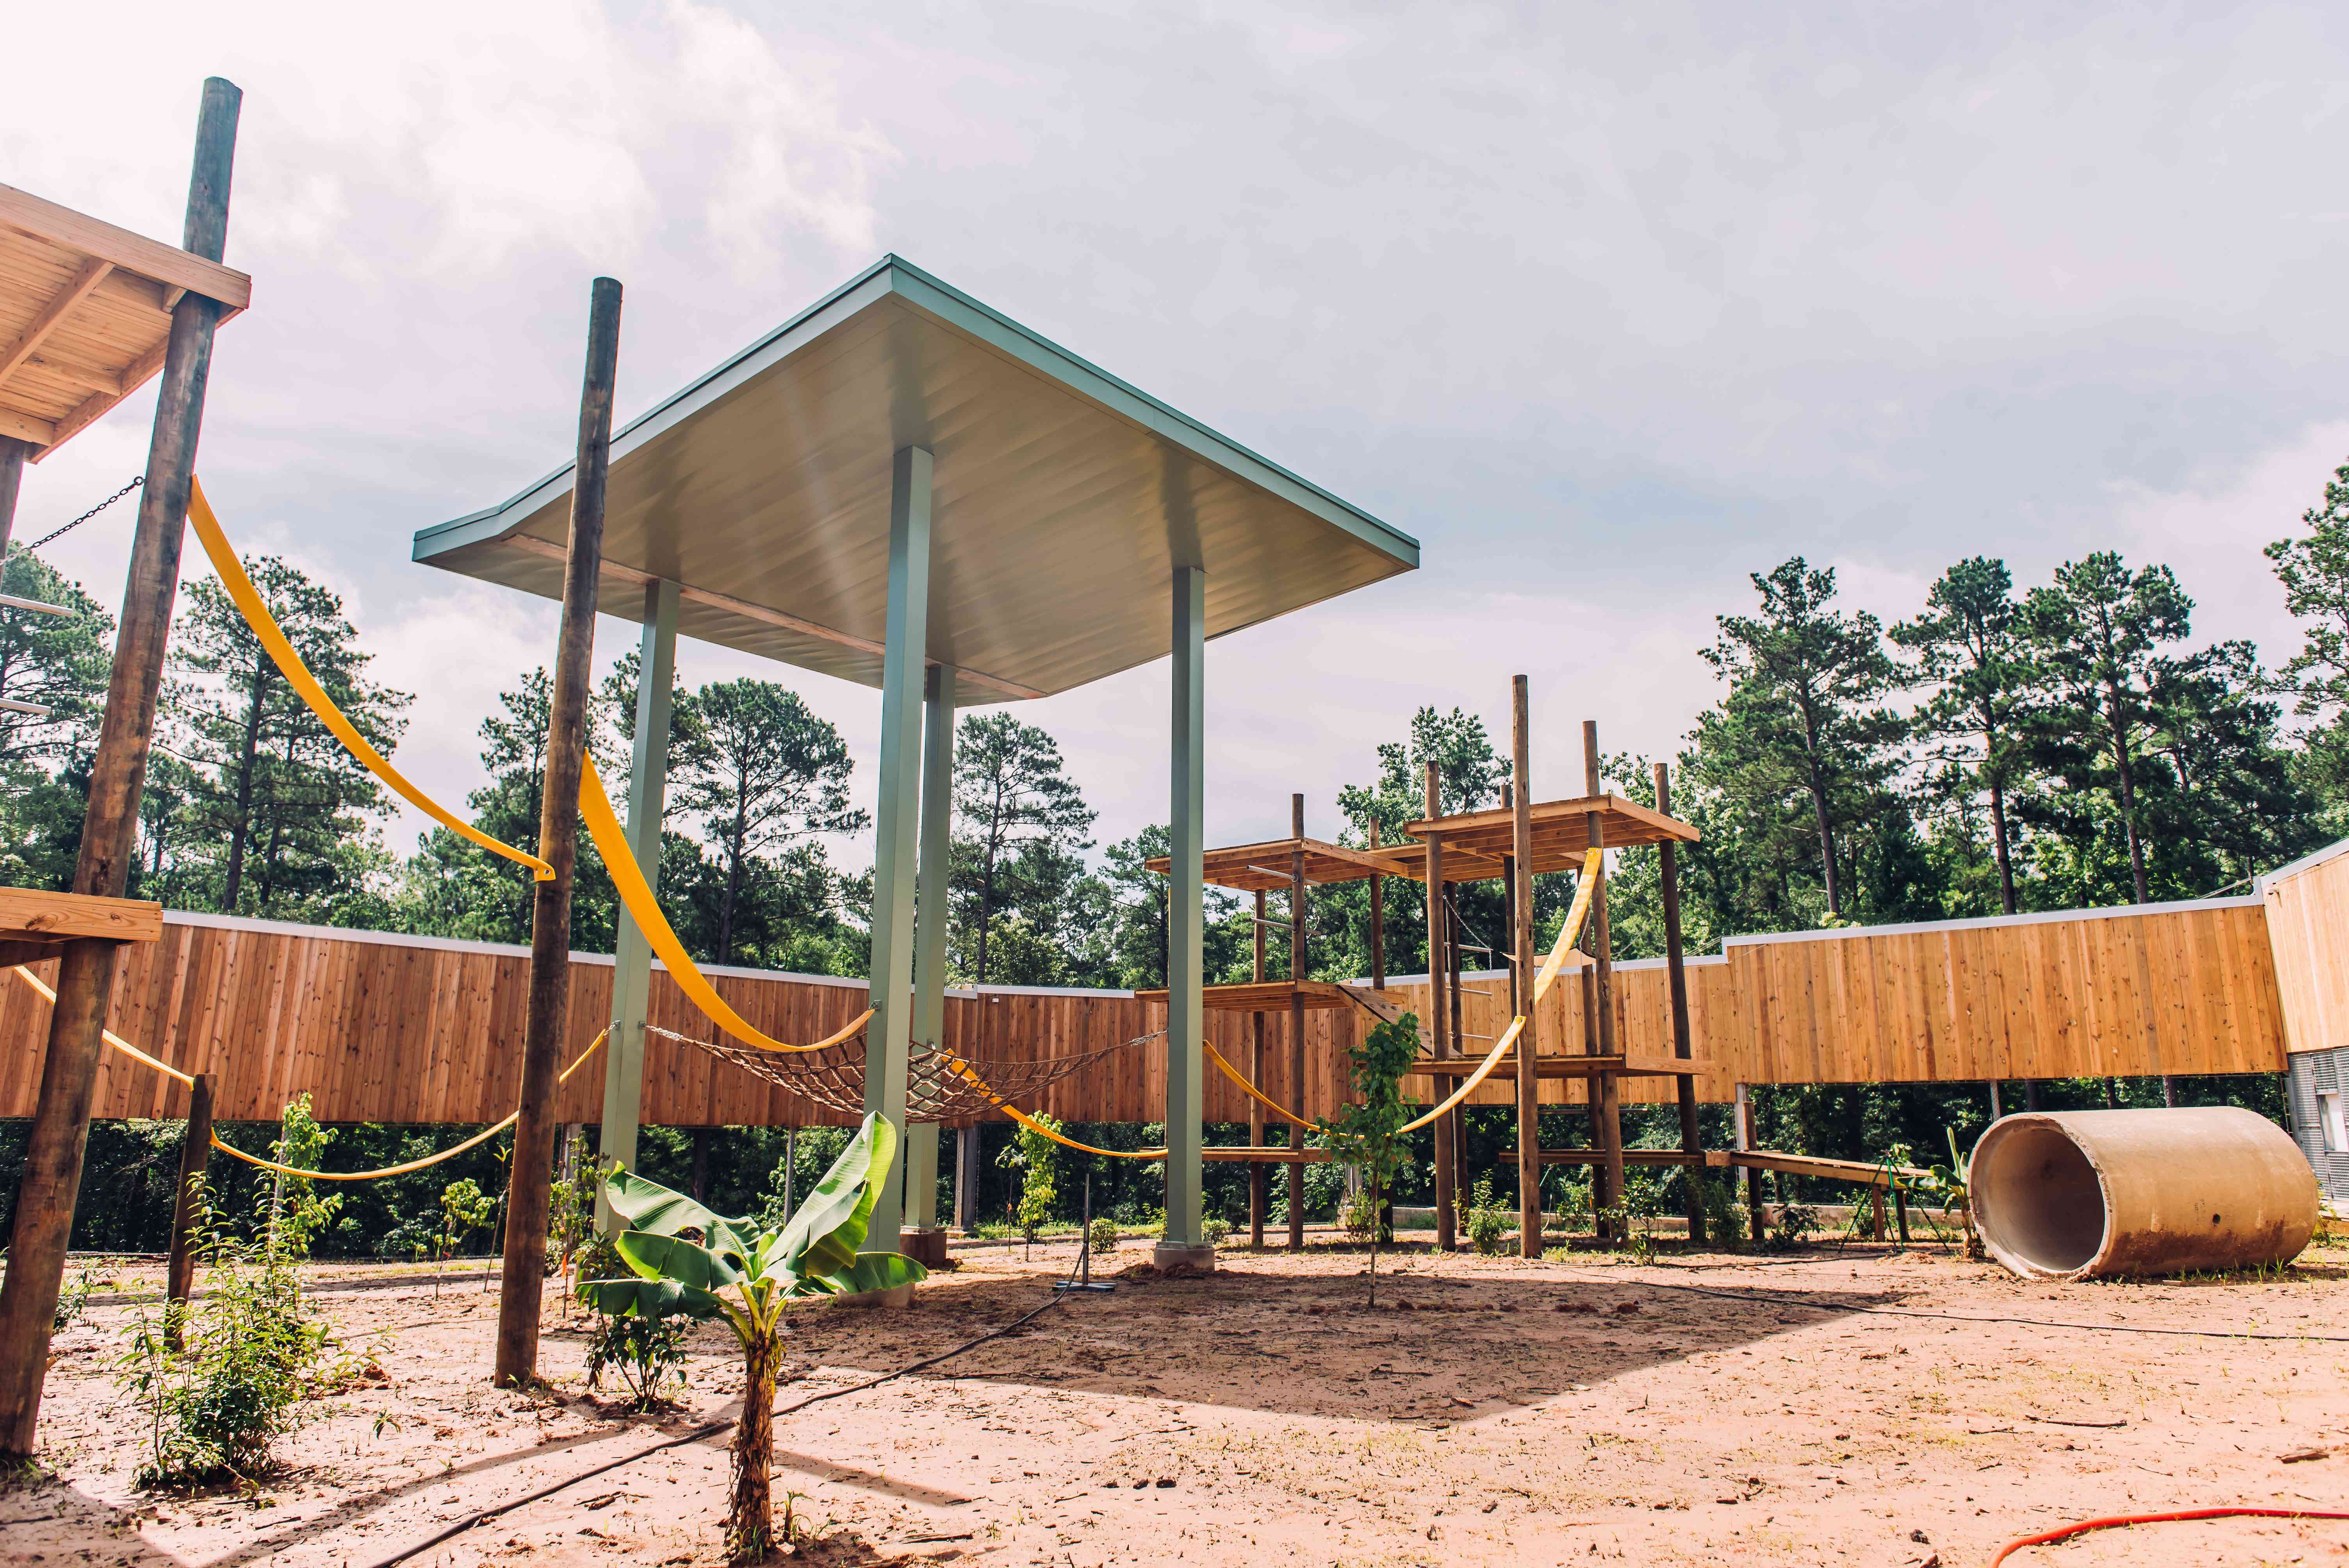 The new corral at Chimp Haven has 15,000 square feet for exploring, playing and climbing.